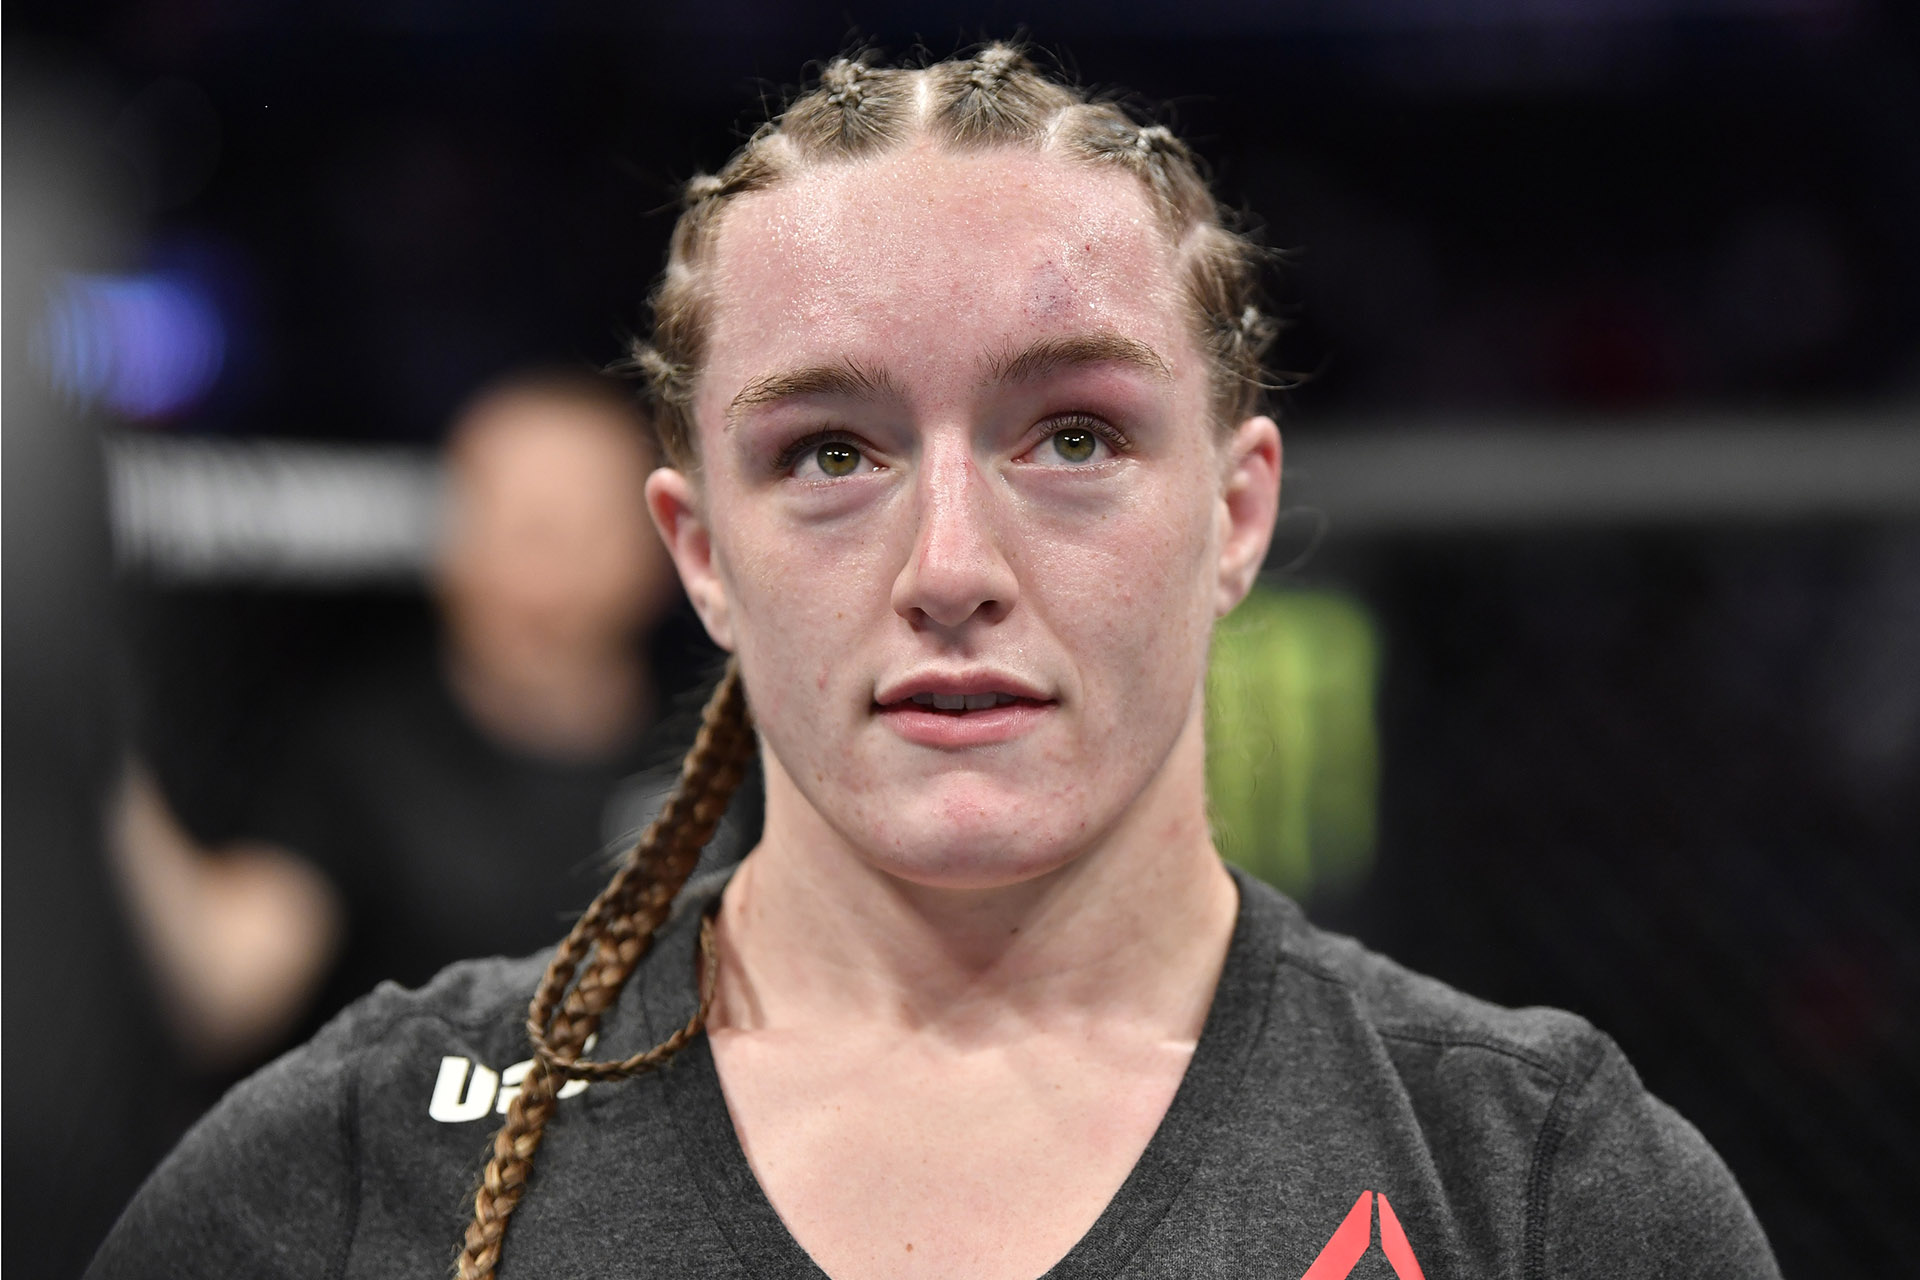 Aspen Ladd celebrates her TKO victory over Yana Kunitskaya of Russia in their women's bantamweight bout during the UFC Fight Night event at Capital One Arena on December 07, 2019 in Washington, DC. (Photo by Jeff Bottari/Zuffa LLC via Getty Images)